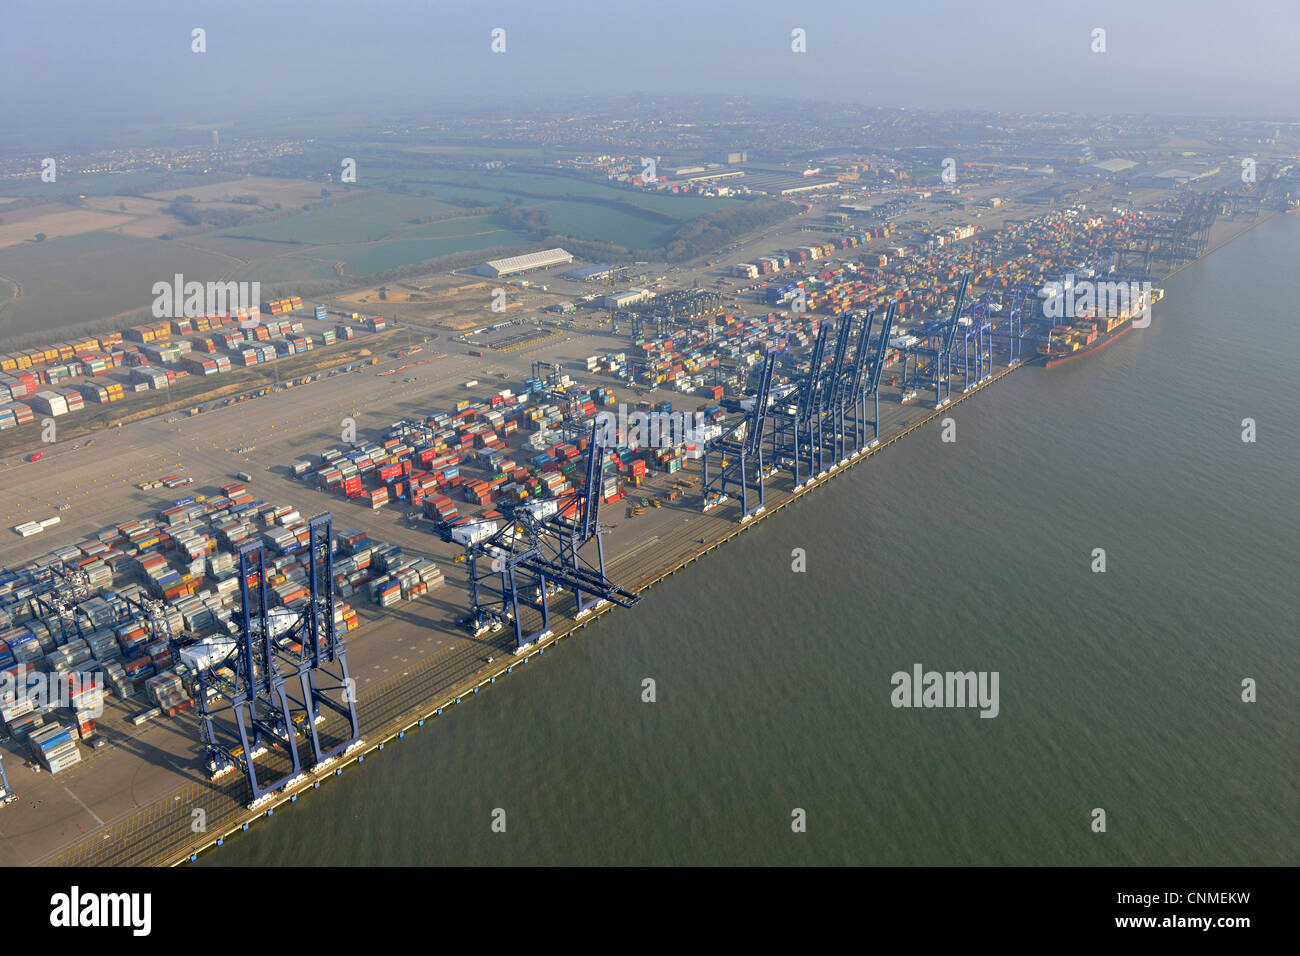 Aerial photograph showing Felixstowe docks with ship in port, cargo containers and cranes. - Stock Image